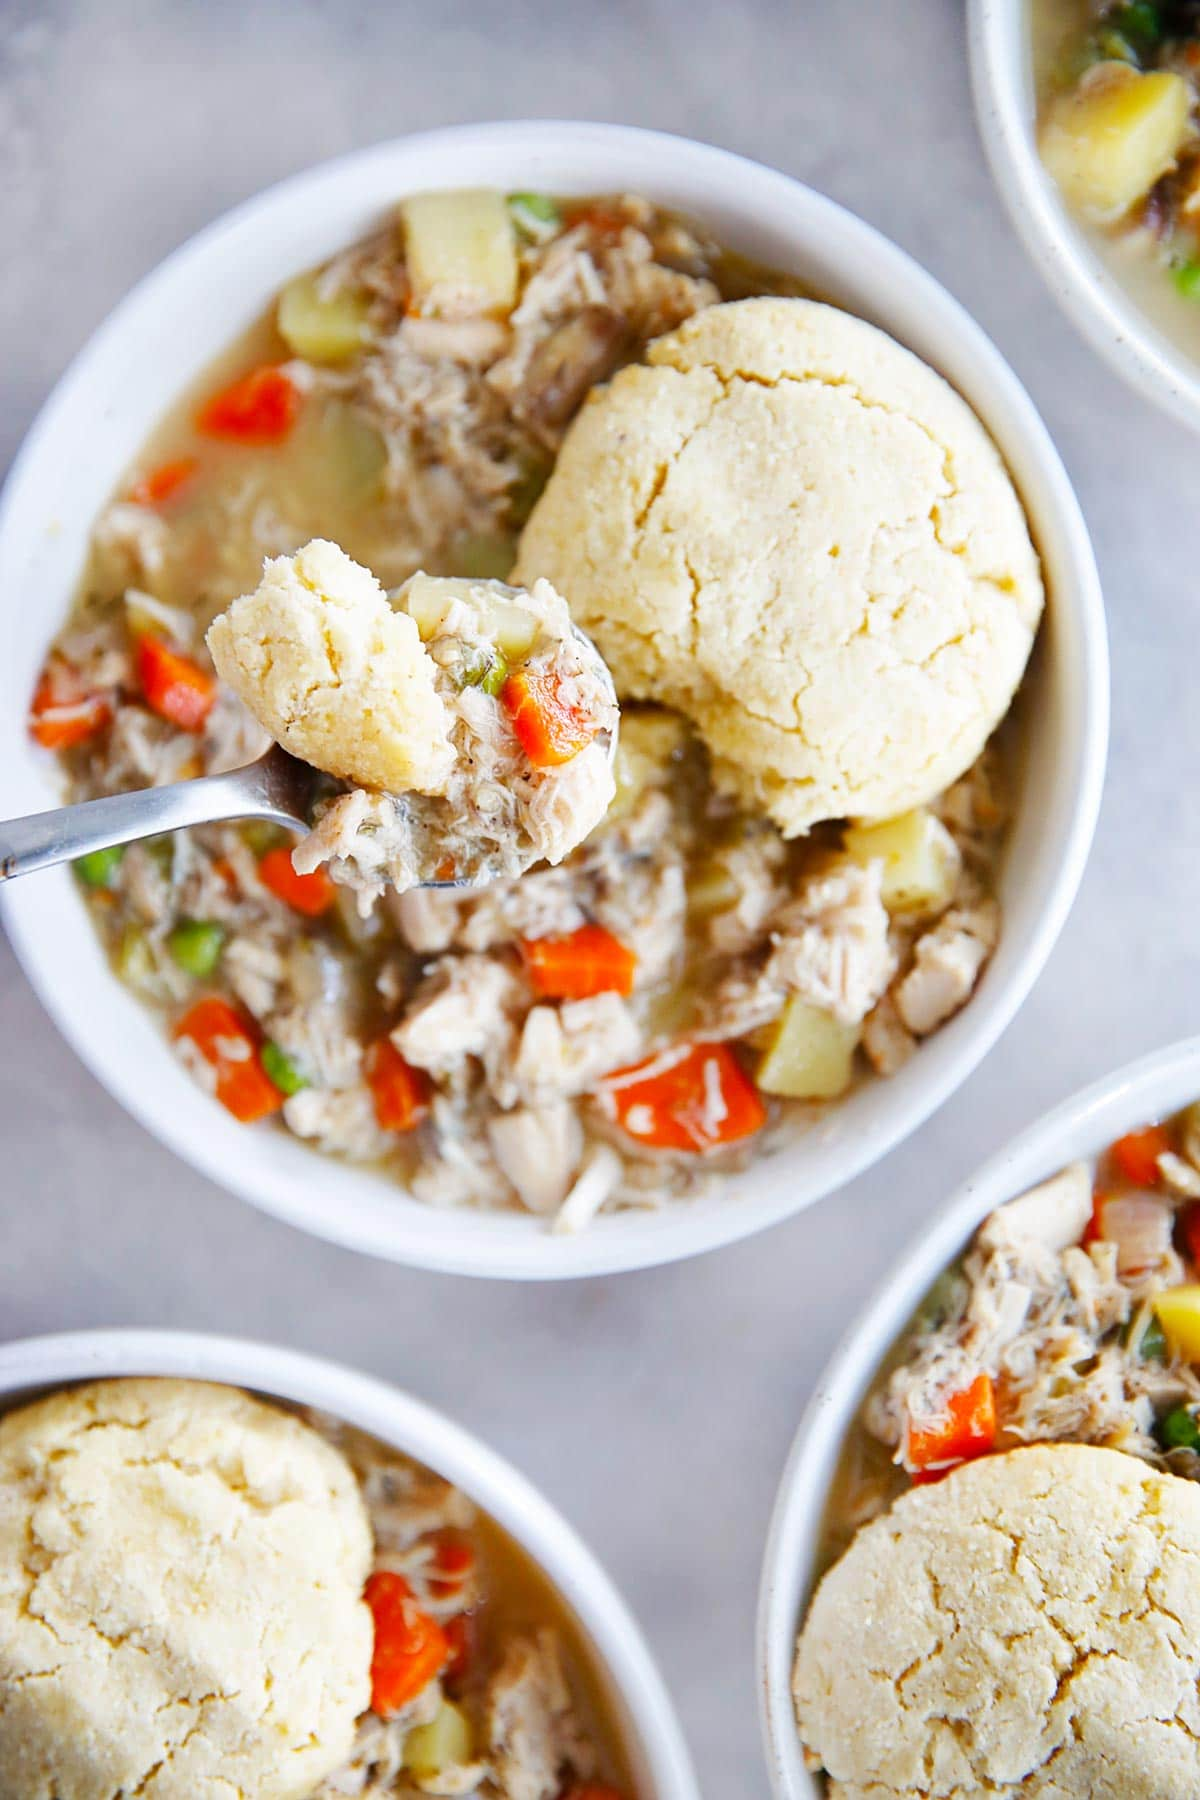 Deconstructed Chicken Pot Pie (Gluten Free)